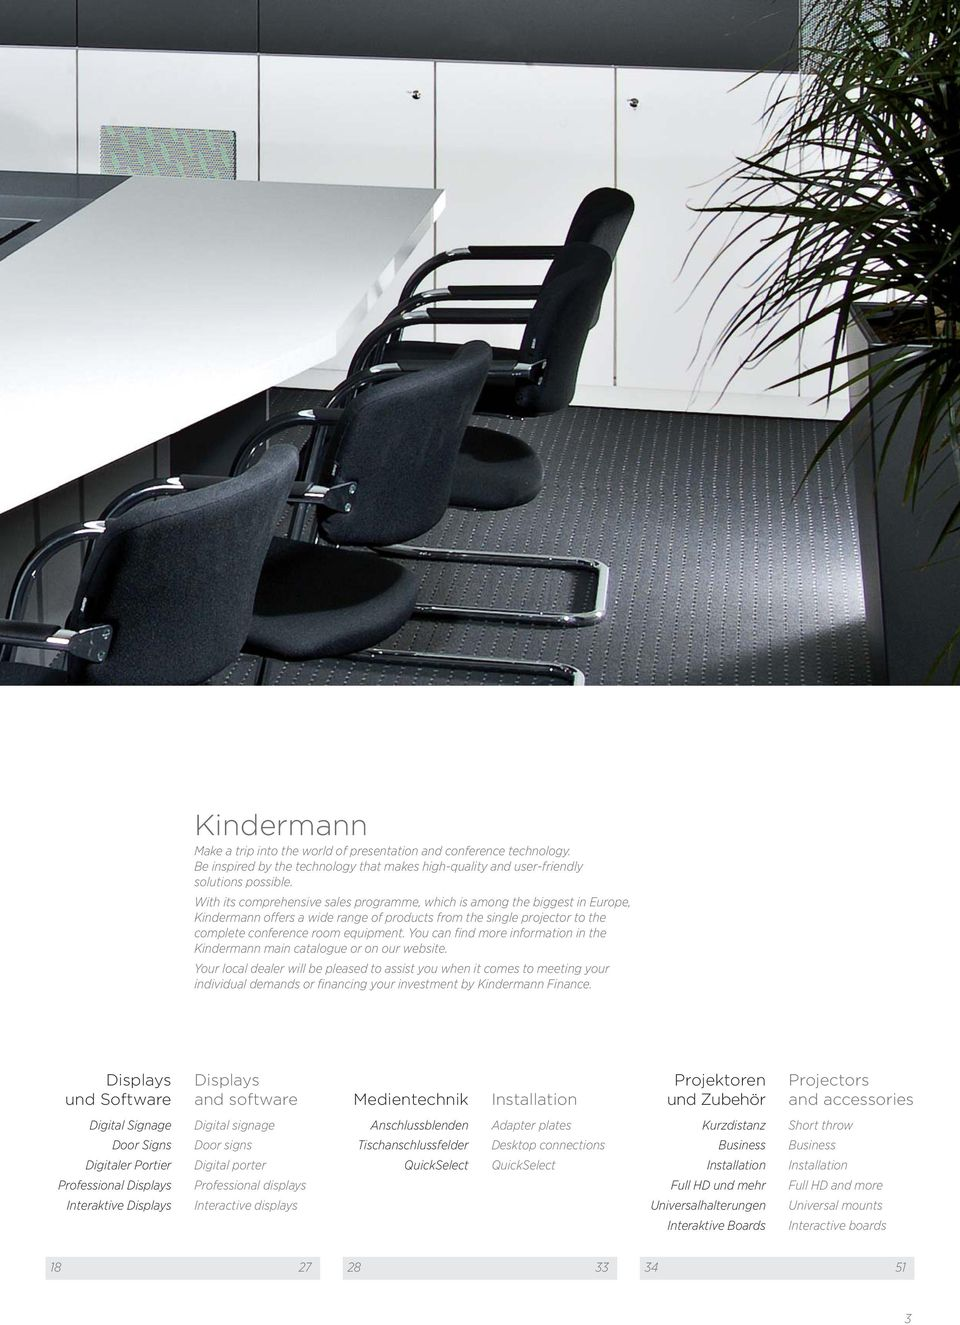 You can find more information in the Kindermann main catalogue or on our website.